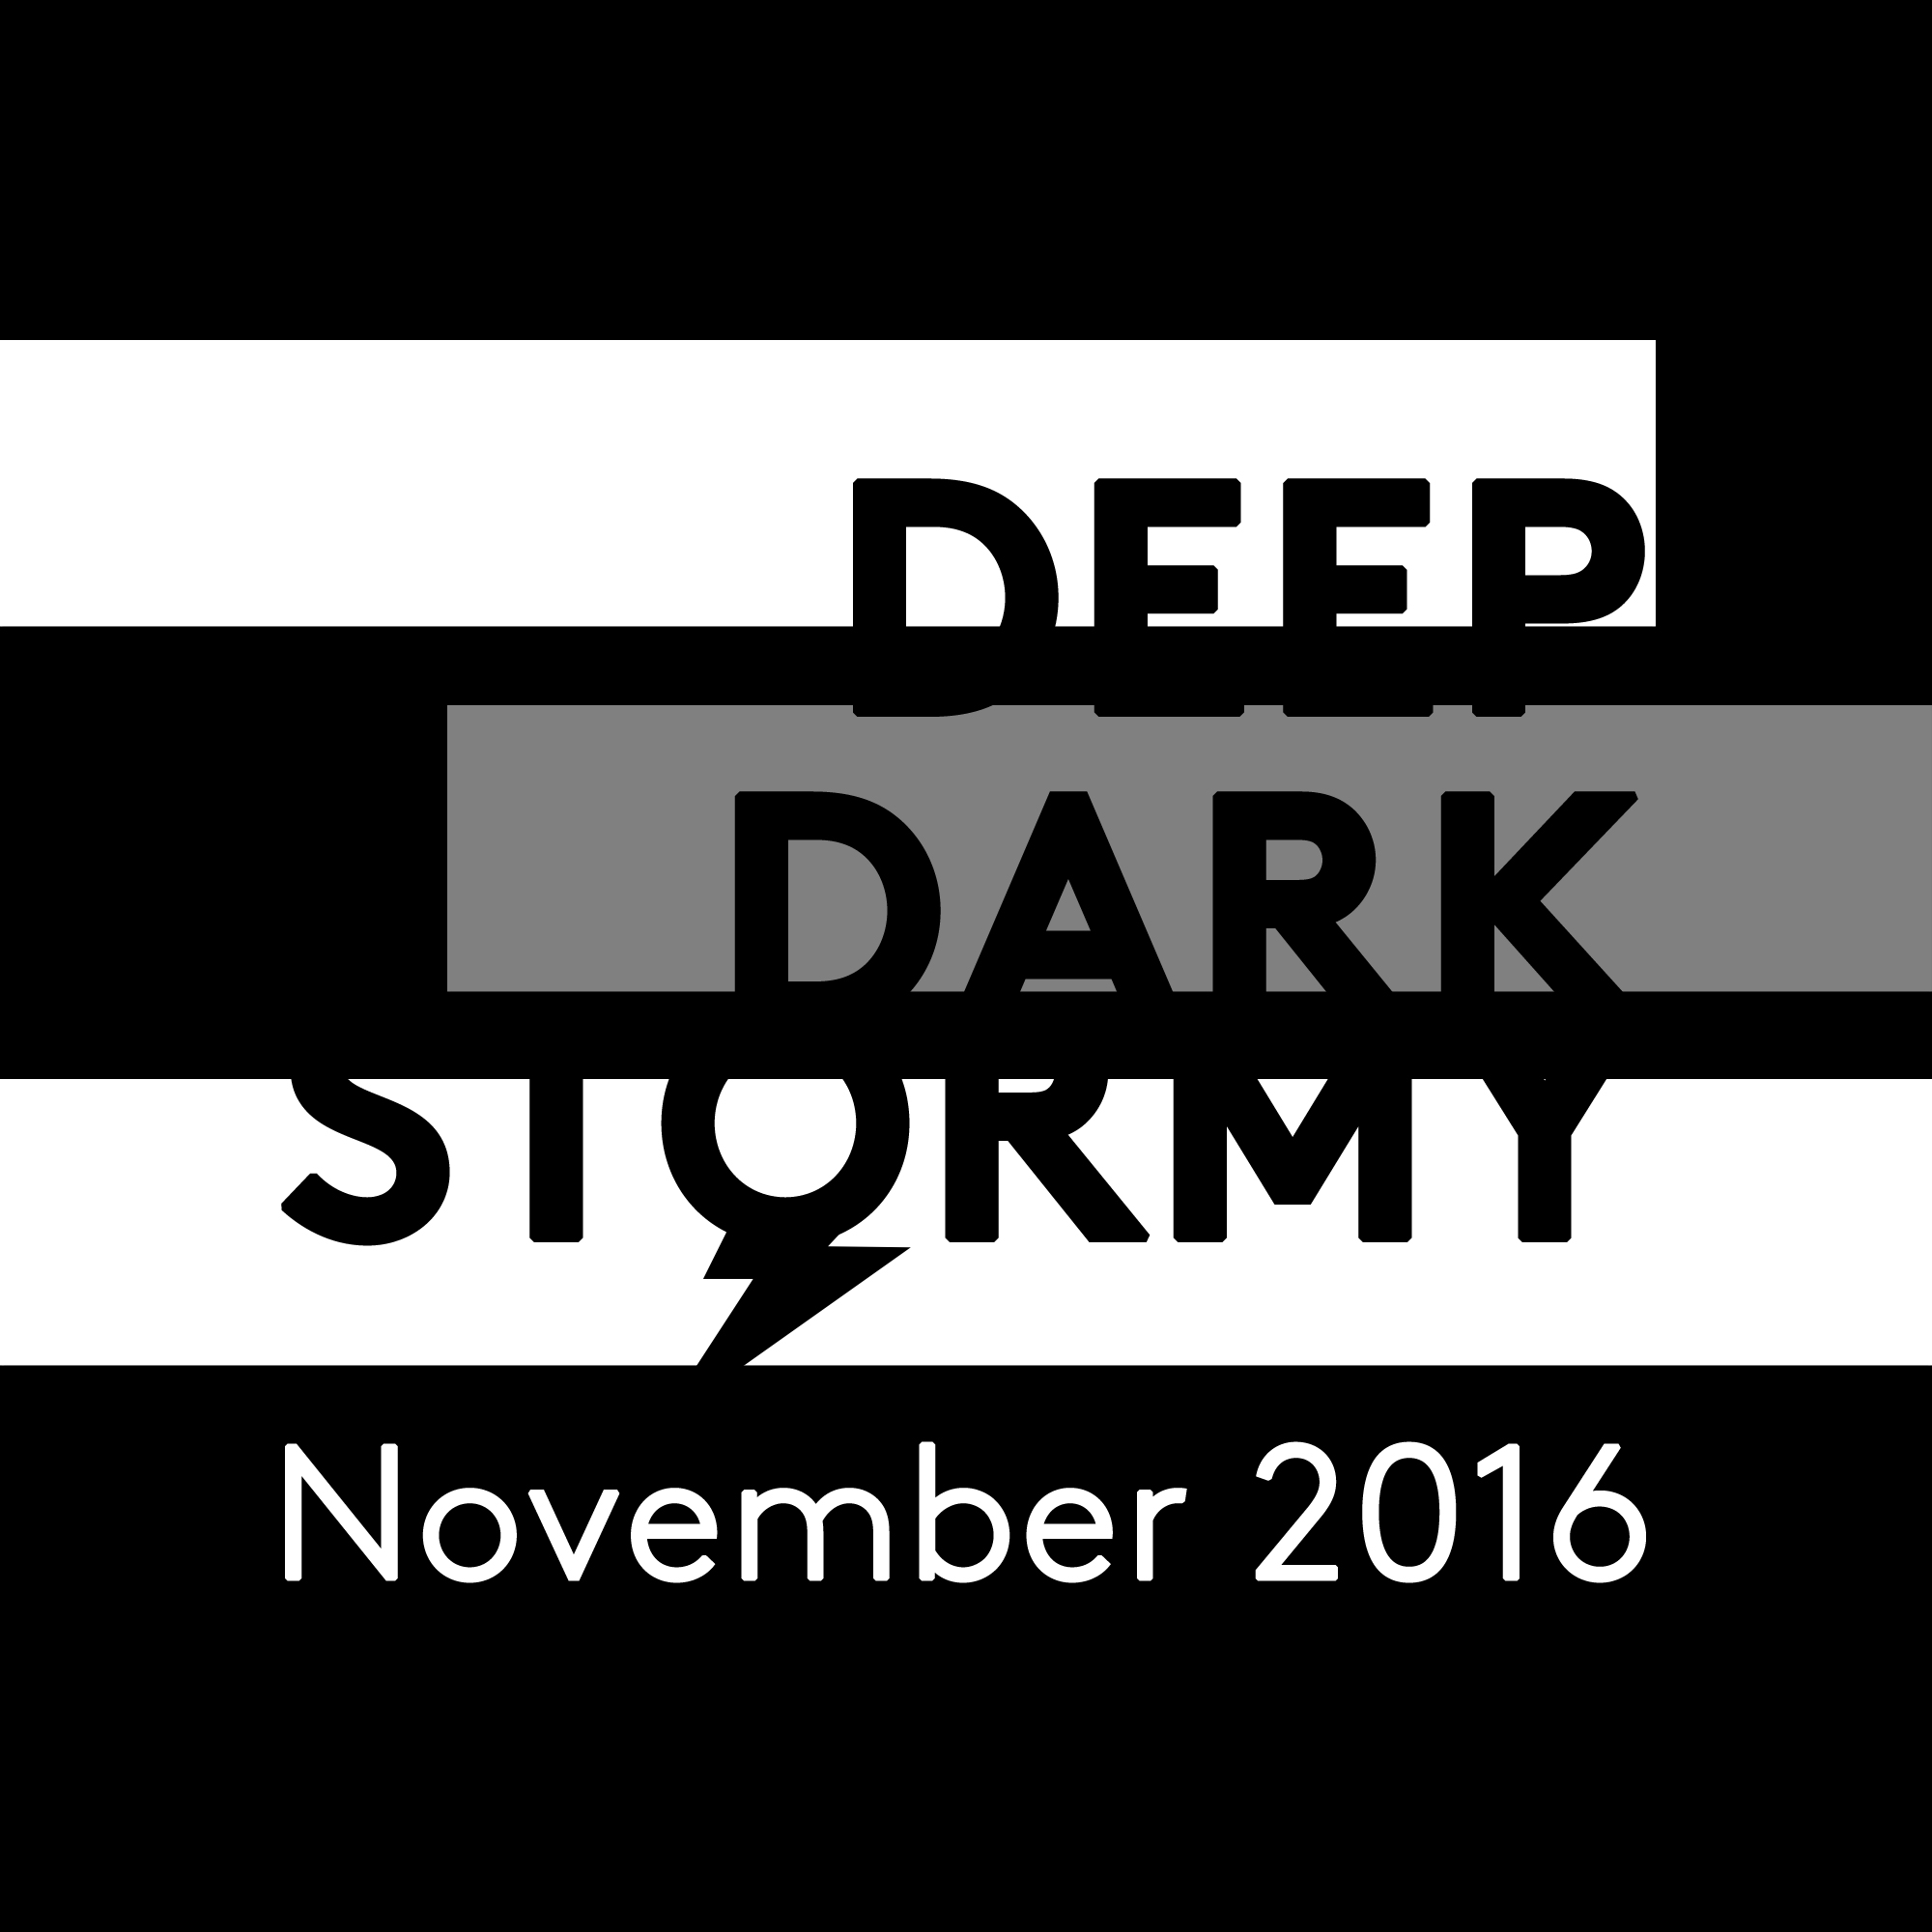 Deep Dark Stormy - November 2016